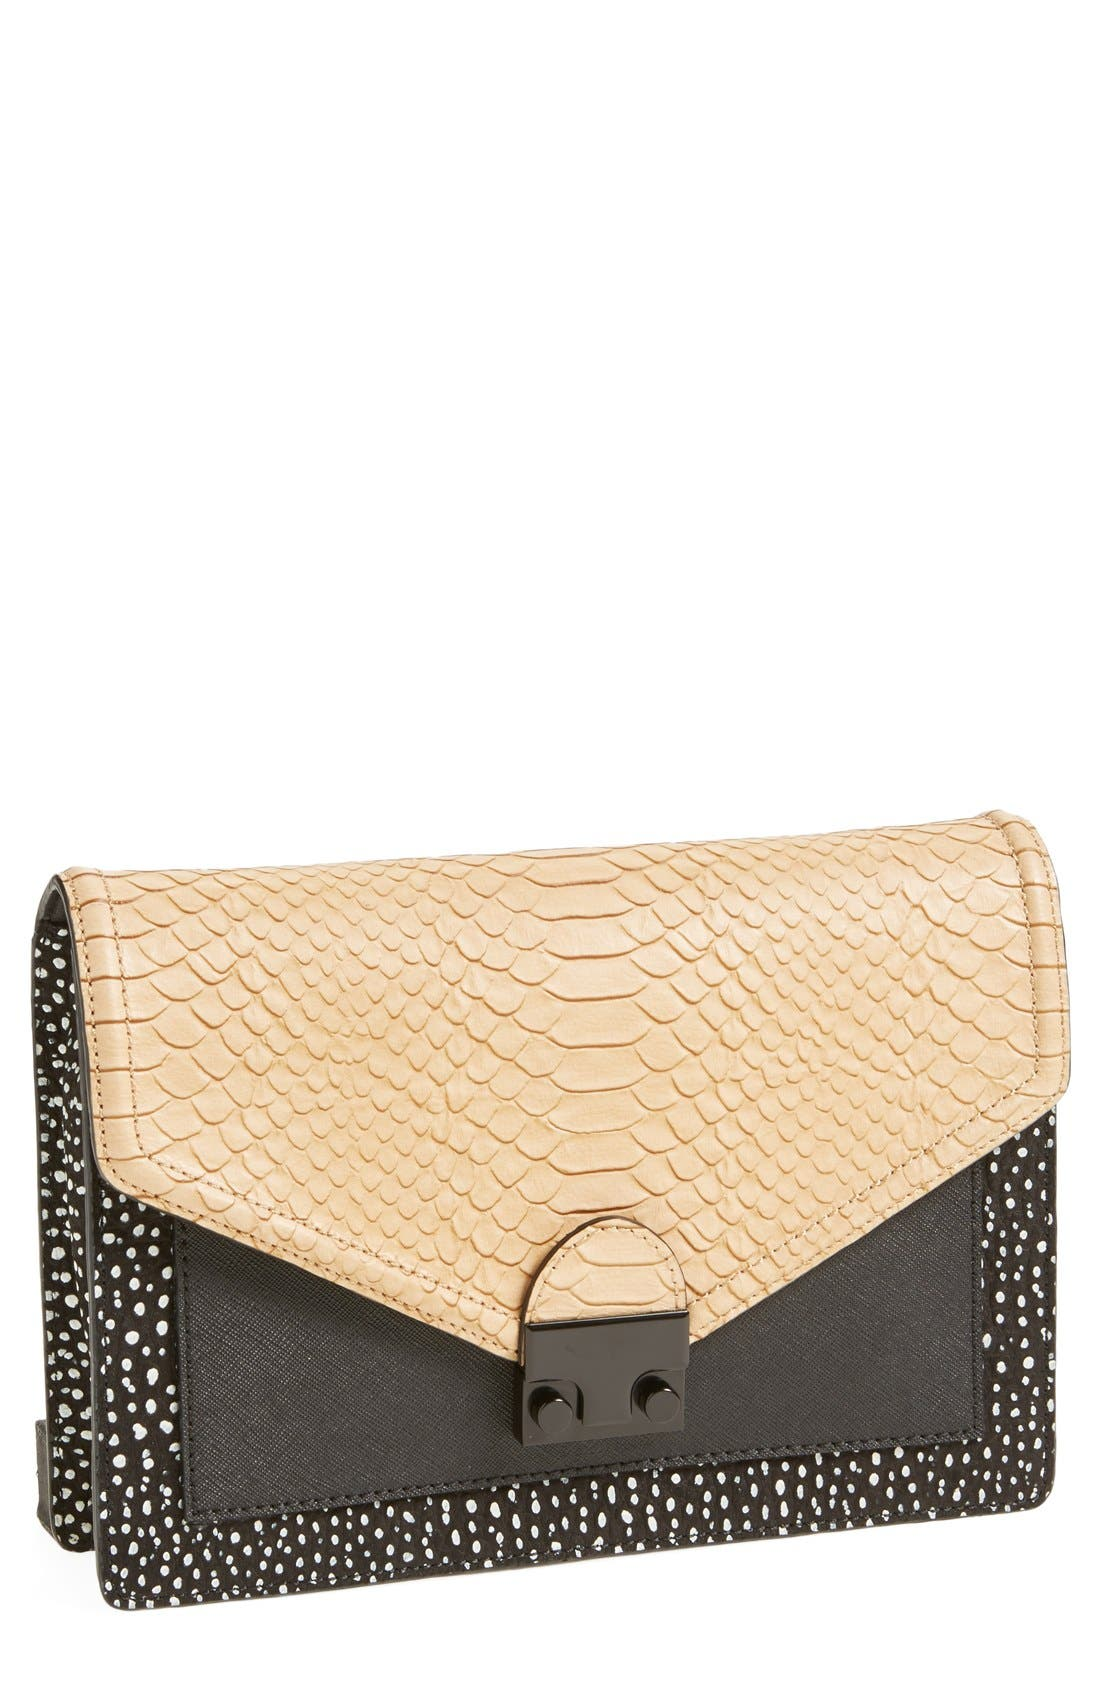 'Rider' Clutch,                         Main,                         color, 270